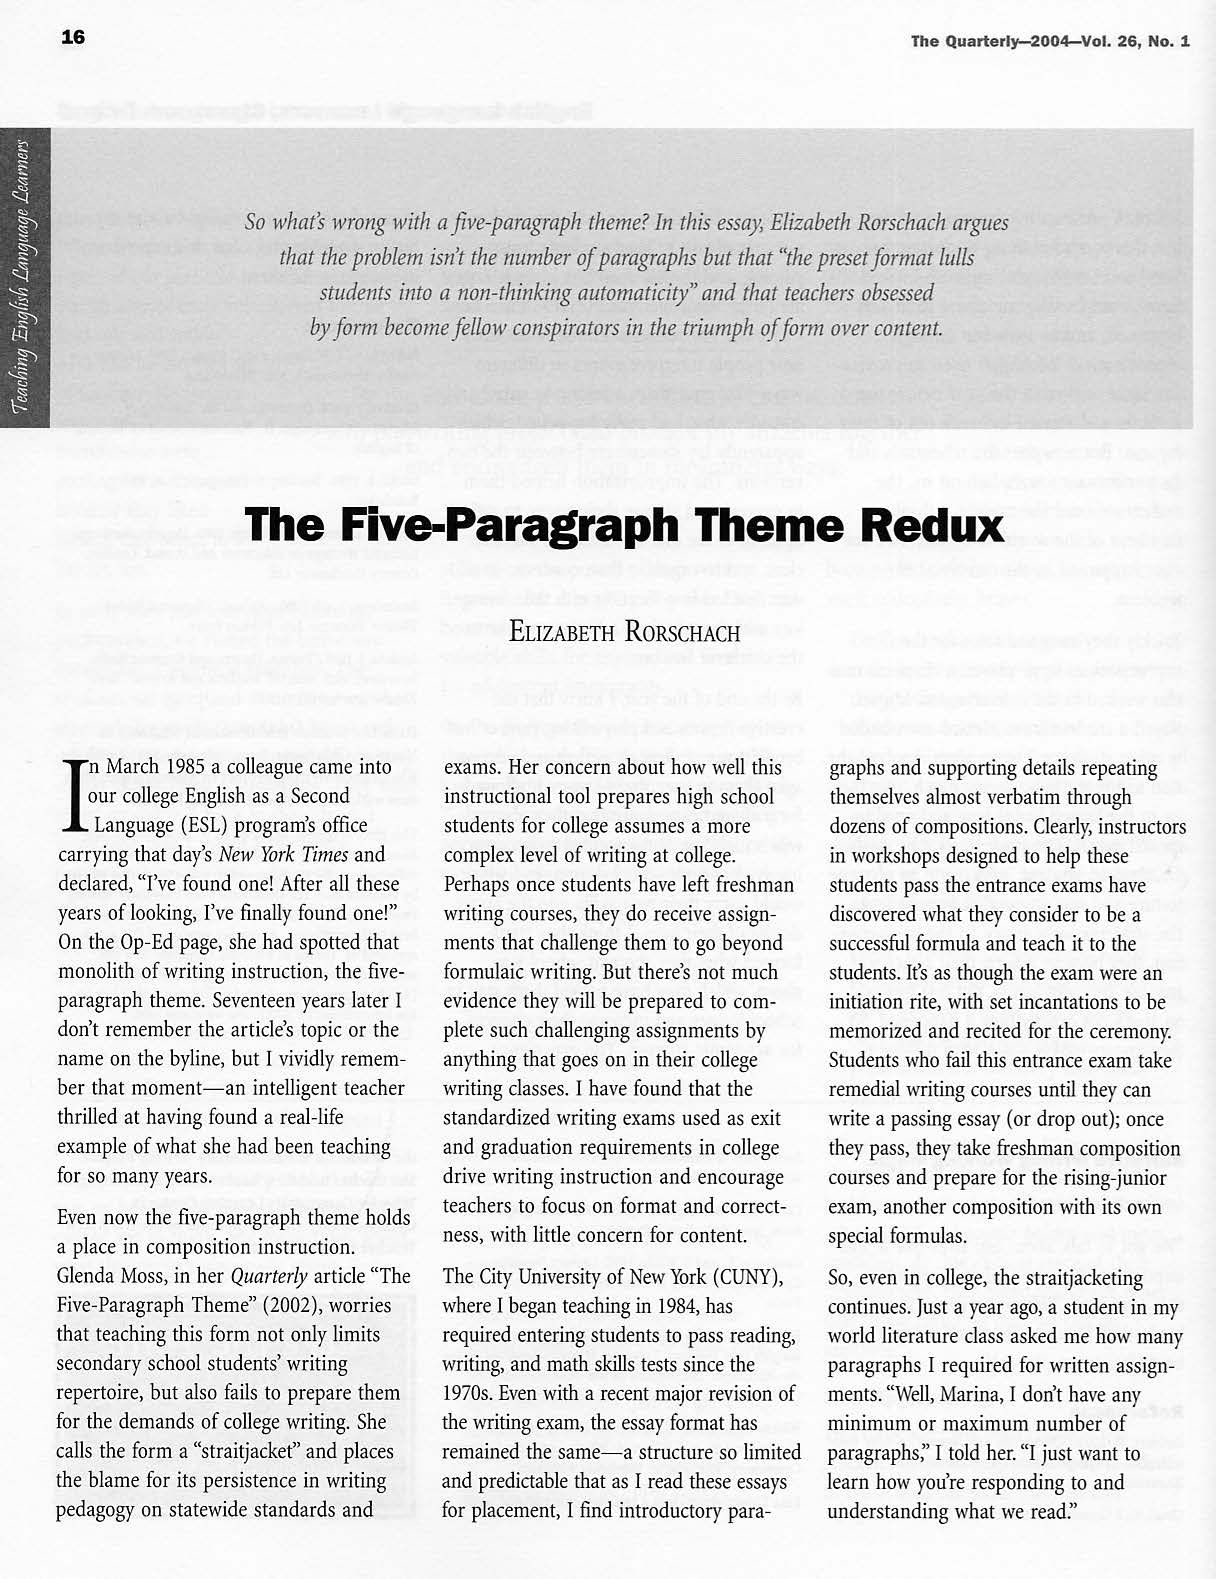 author elizabeth rorschach frame what are the constraints of  author elizabeth rorschach summary what are the constraints of teaching the five paragraph essay rorschach argues that its preset format can lull